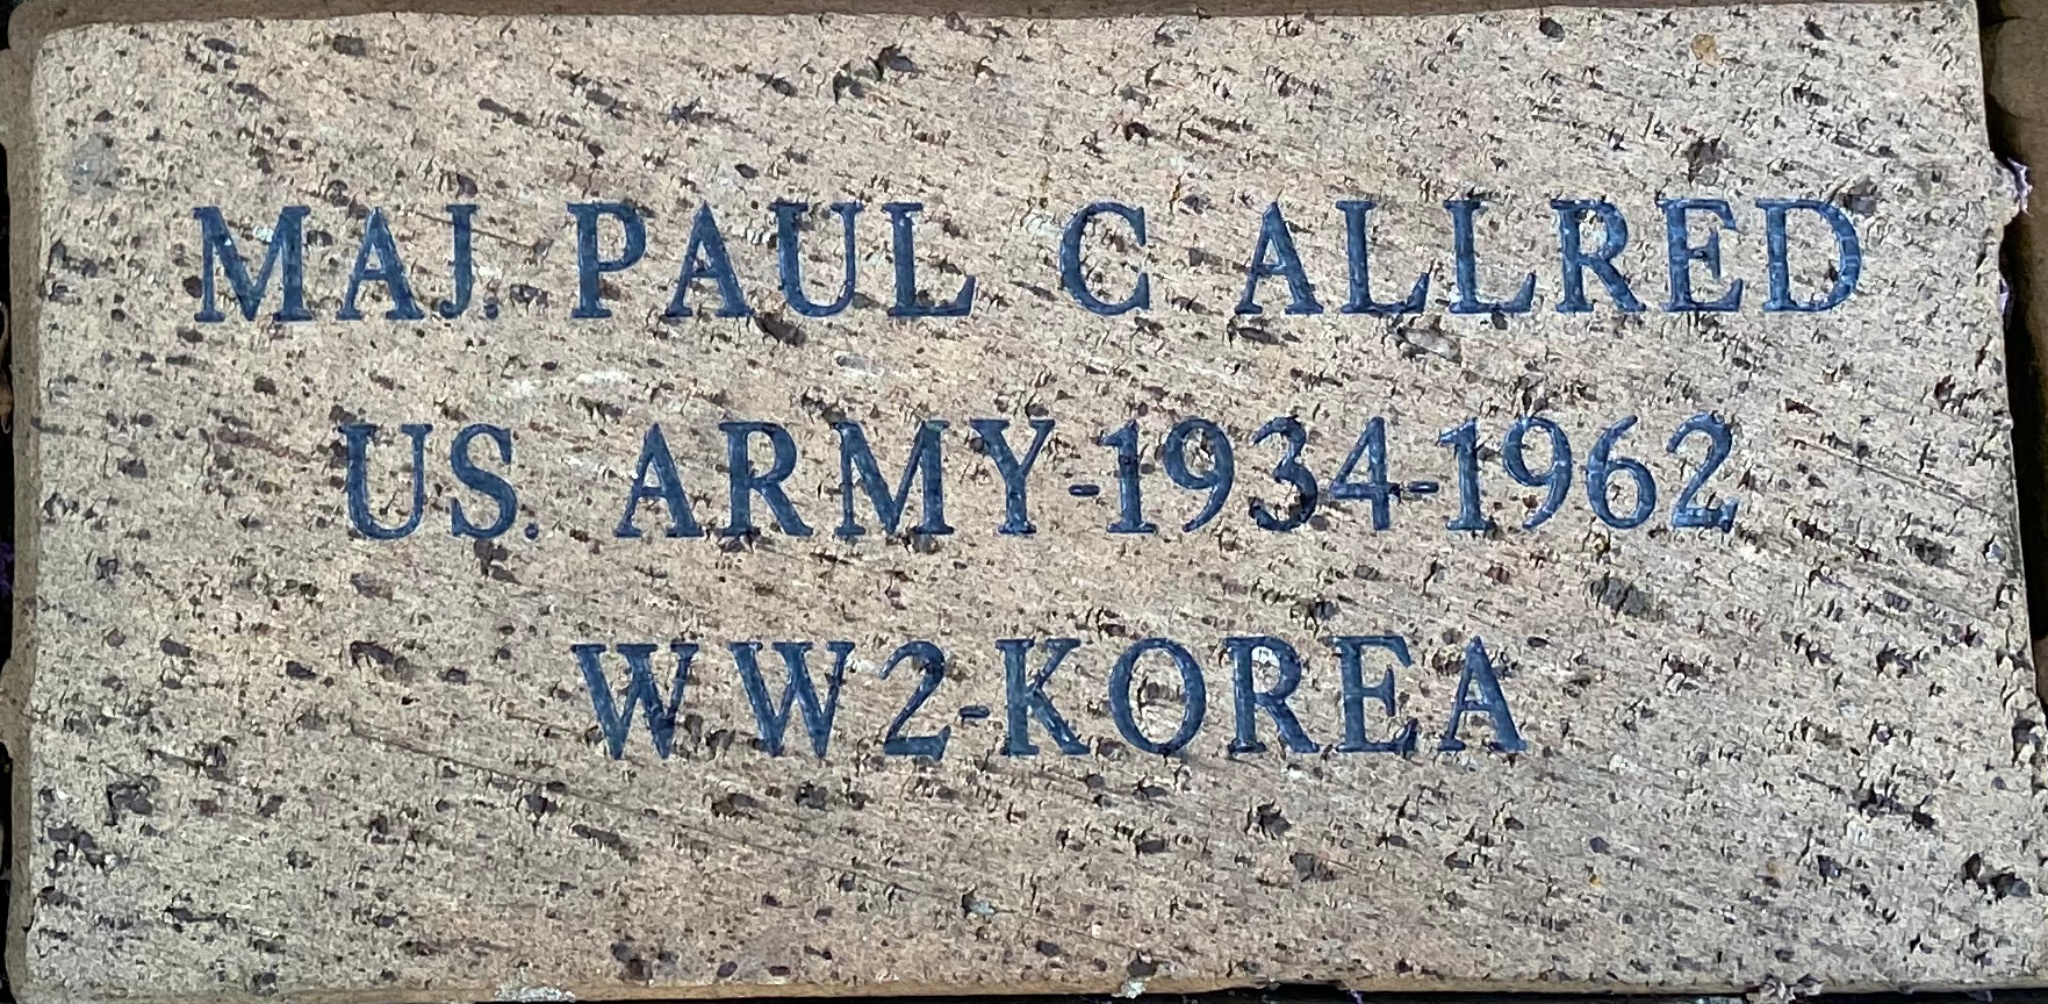 MAJ PAUL C ALLRED U S ARMY 1934-1962 WW2 KOREA